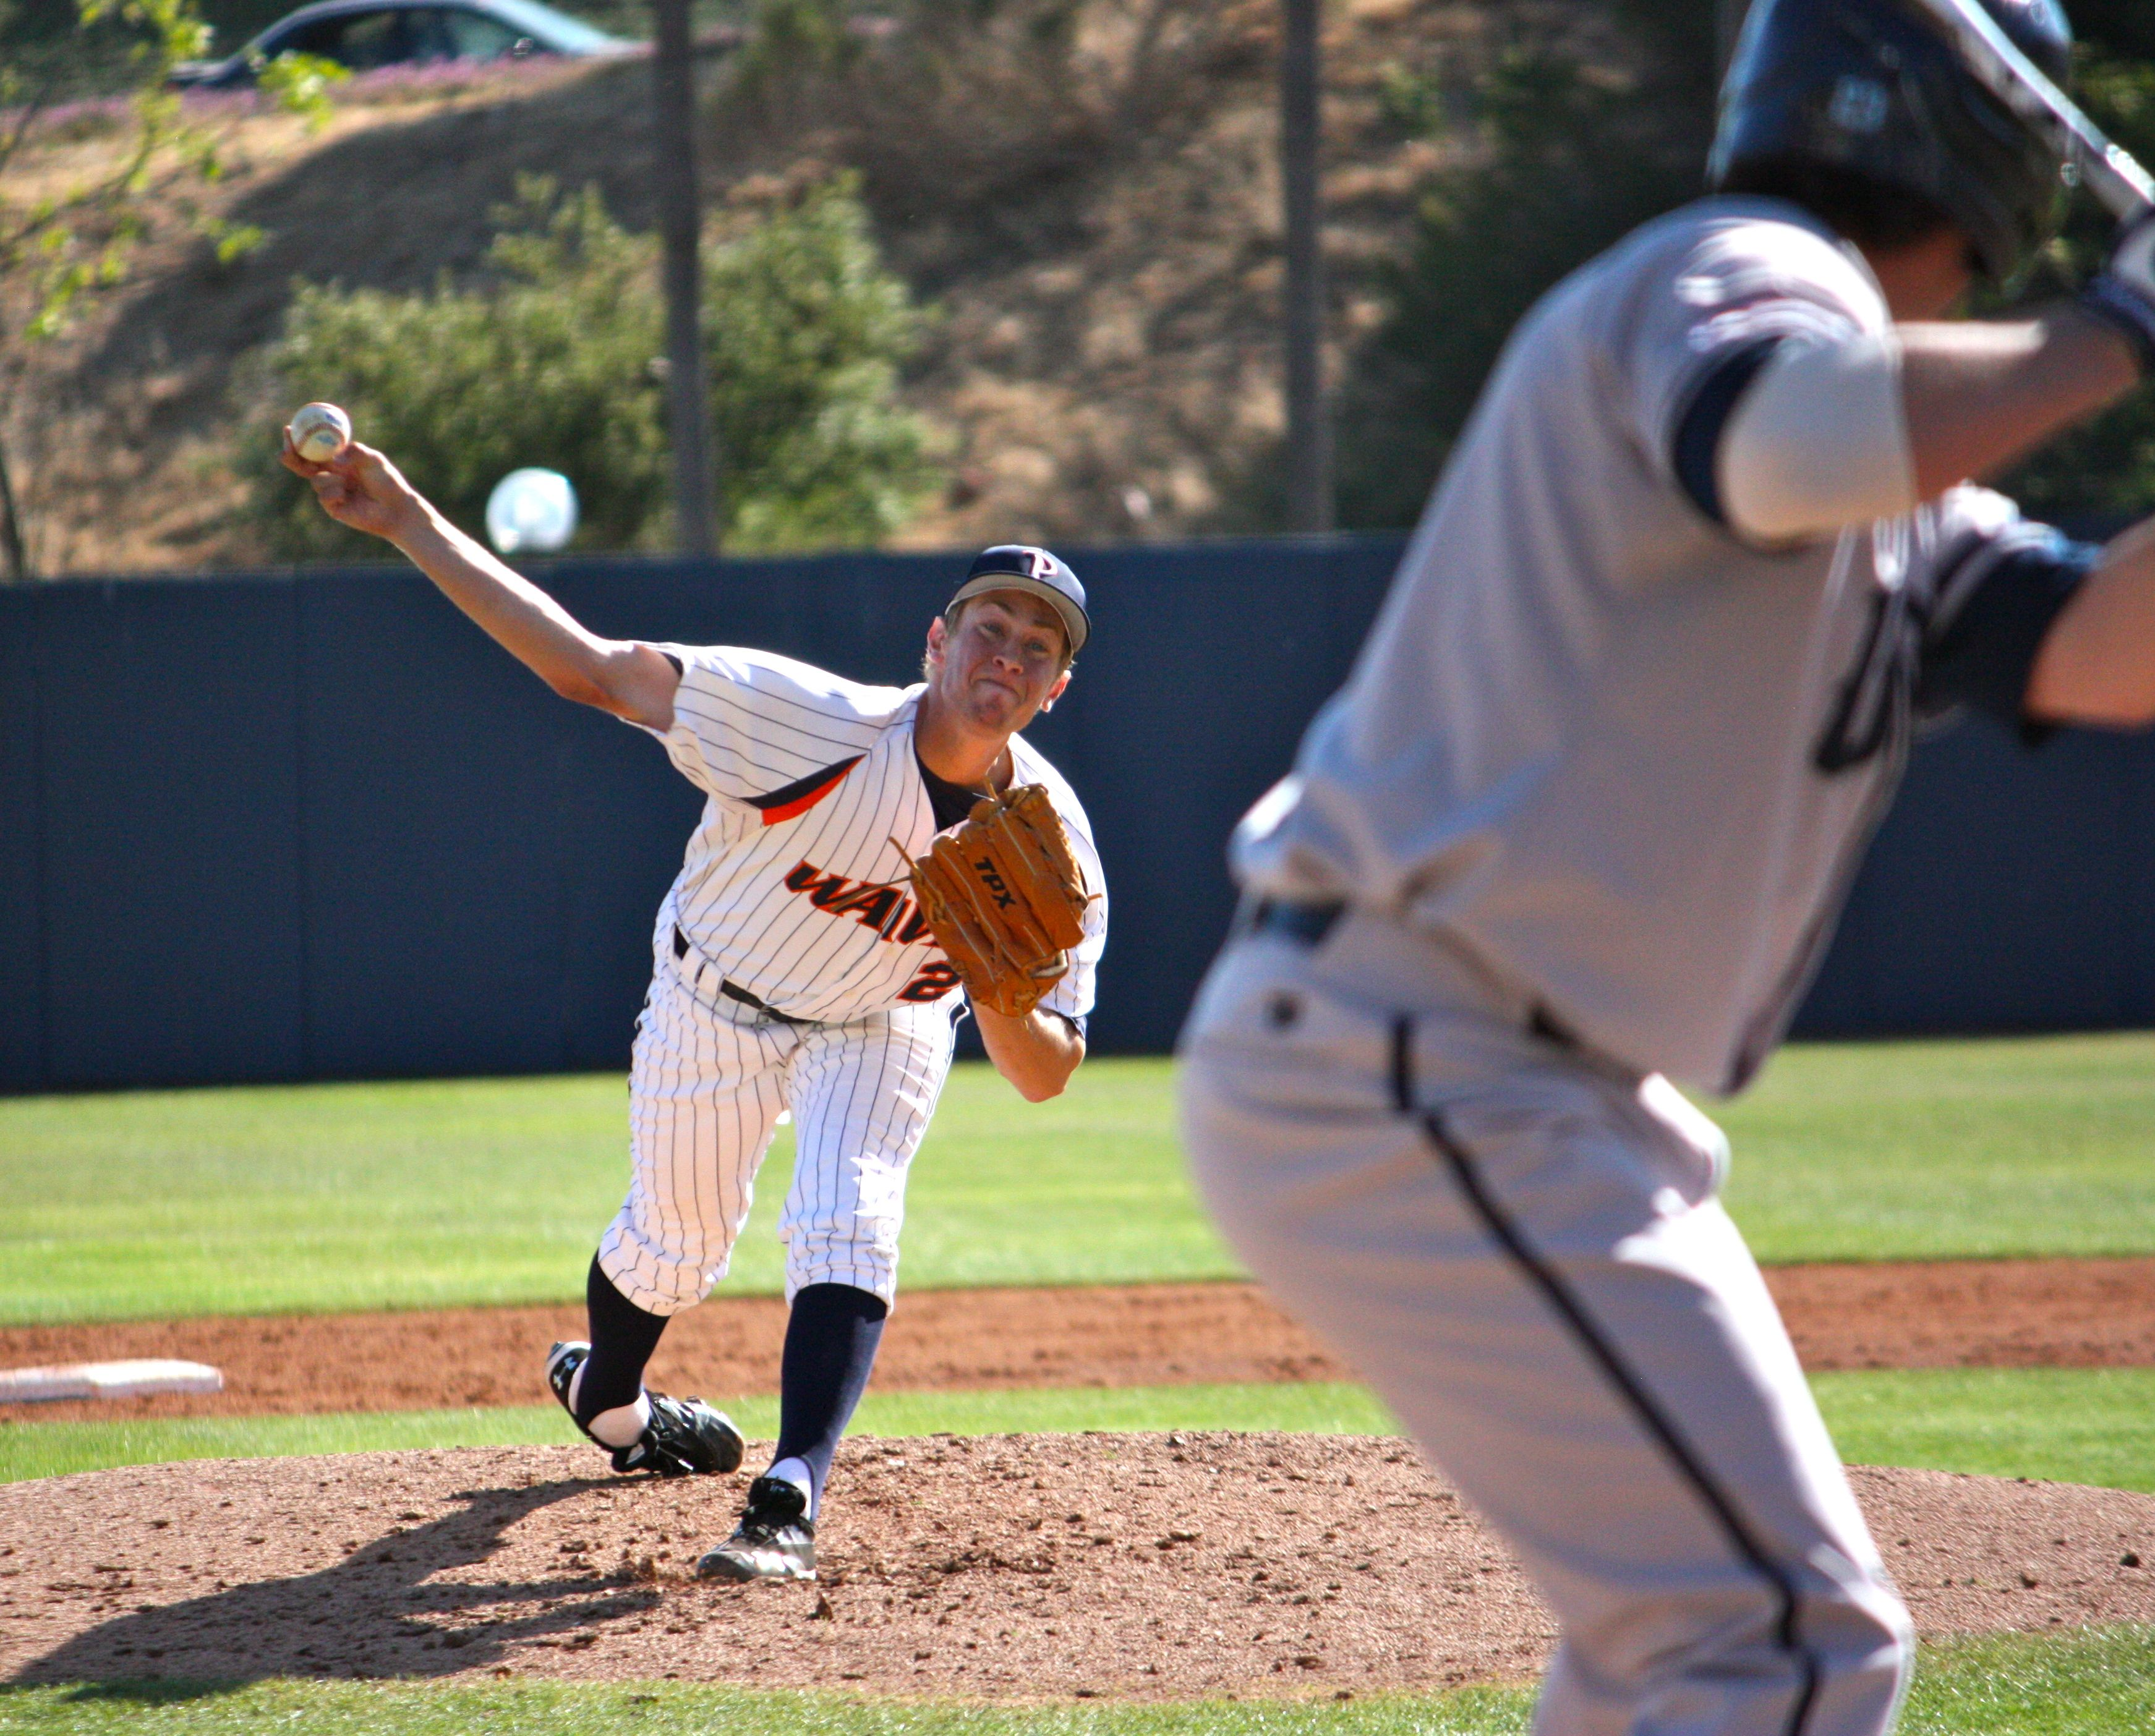 Jon Moscot pitched a complete game.